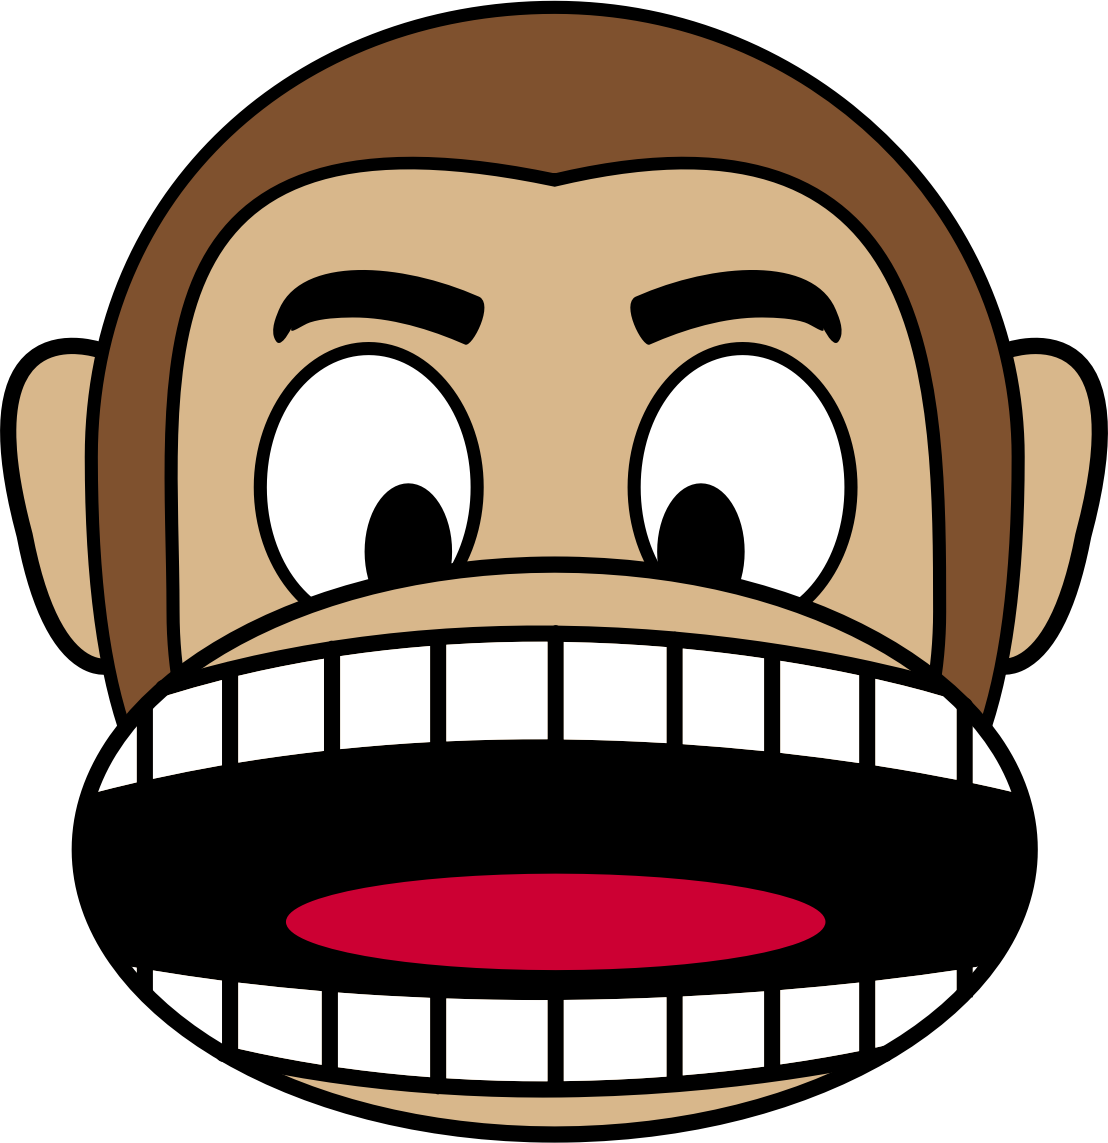 Big clipart open mouth. Monkey emoji angry image